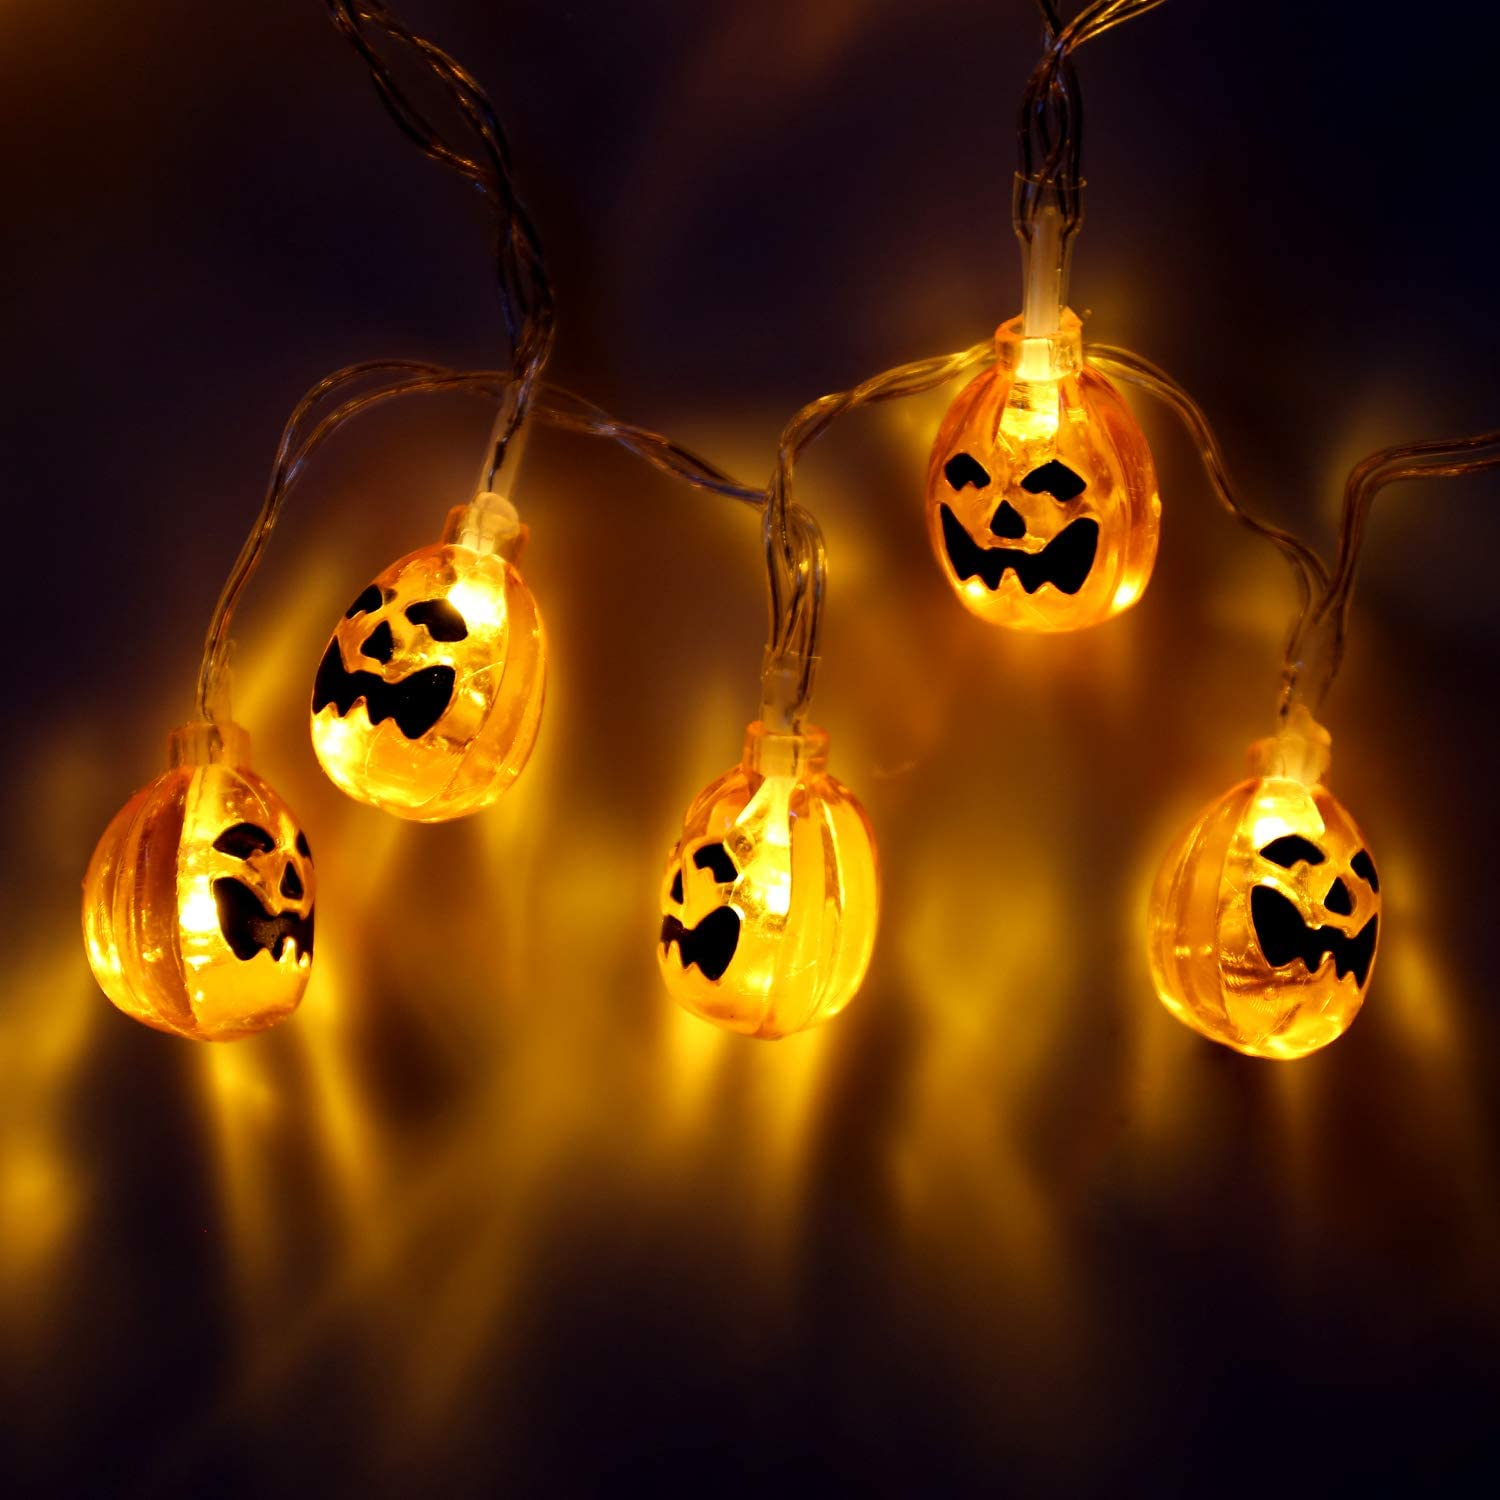 Halloween Decoration Lights String with Battery Operated, Orange Jack-O-Lantern, Warm Light Pumpkins and Purple Bats, 30 LED Lights for Indoor and Outdoor Party, Festival (Little Pumpkin)